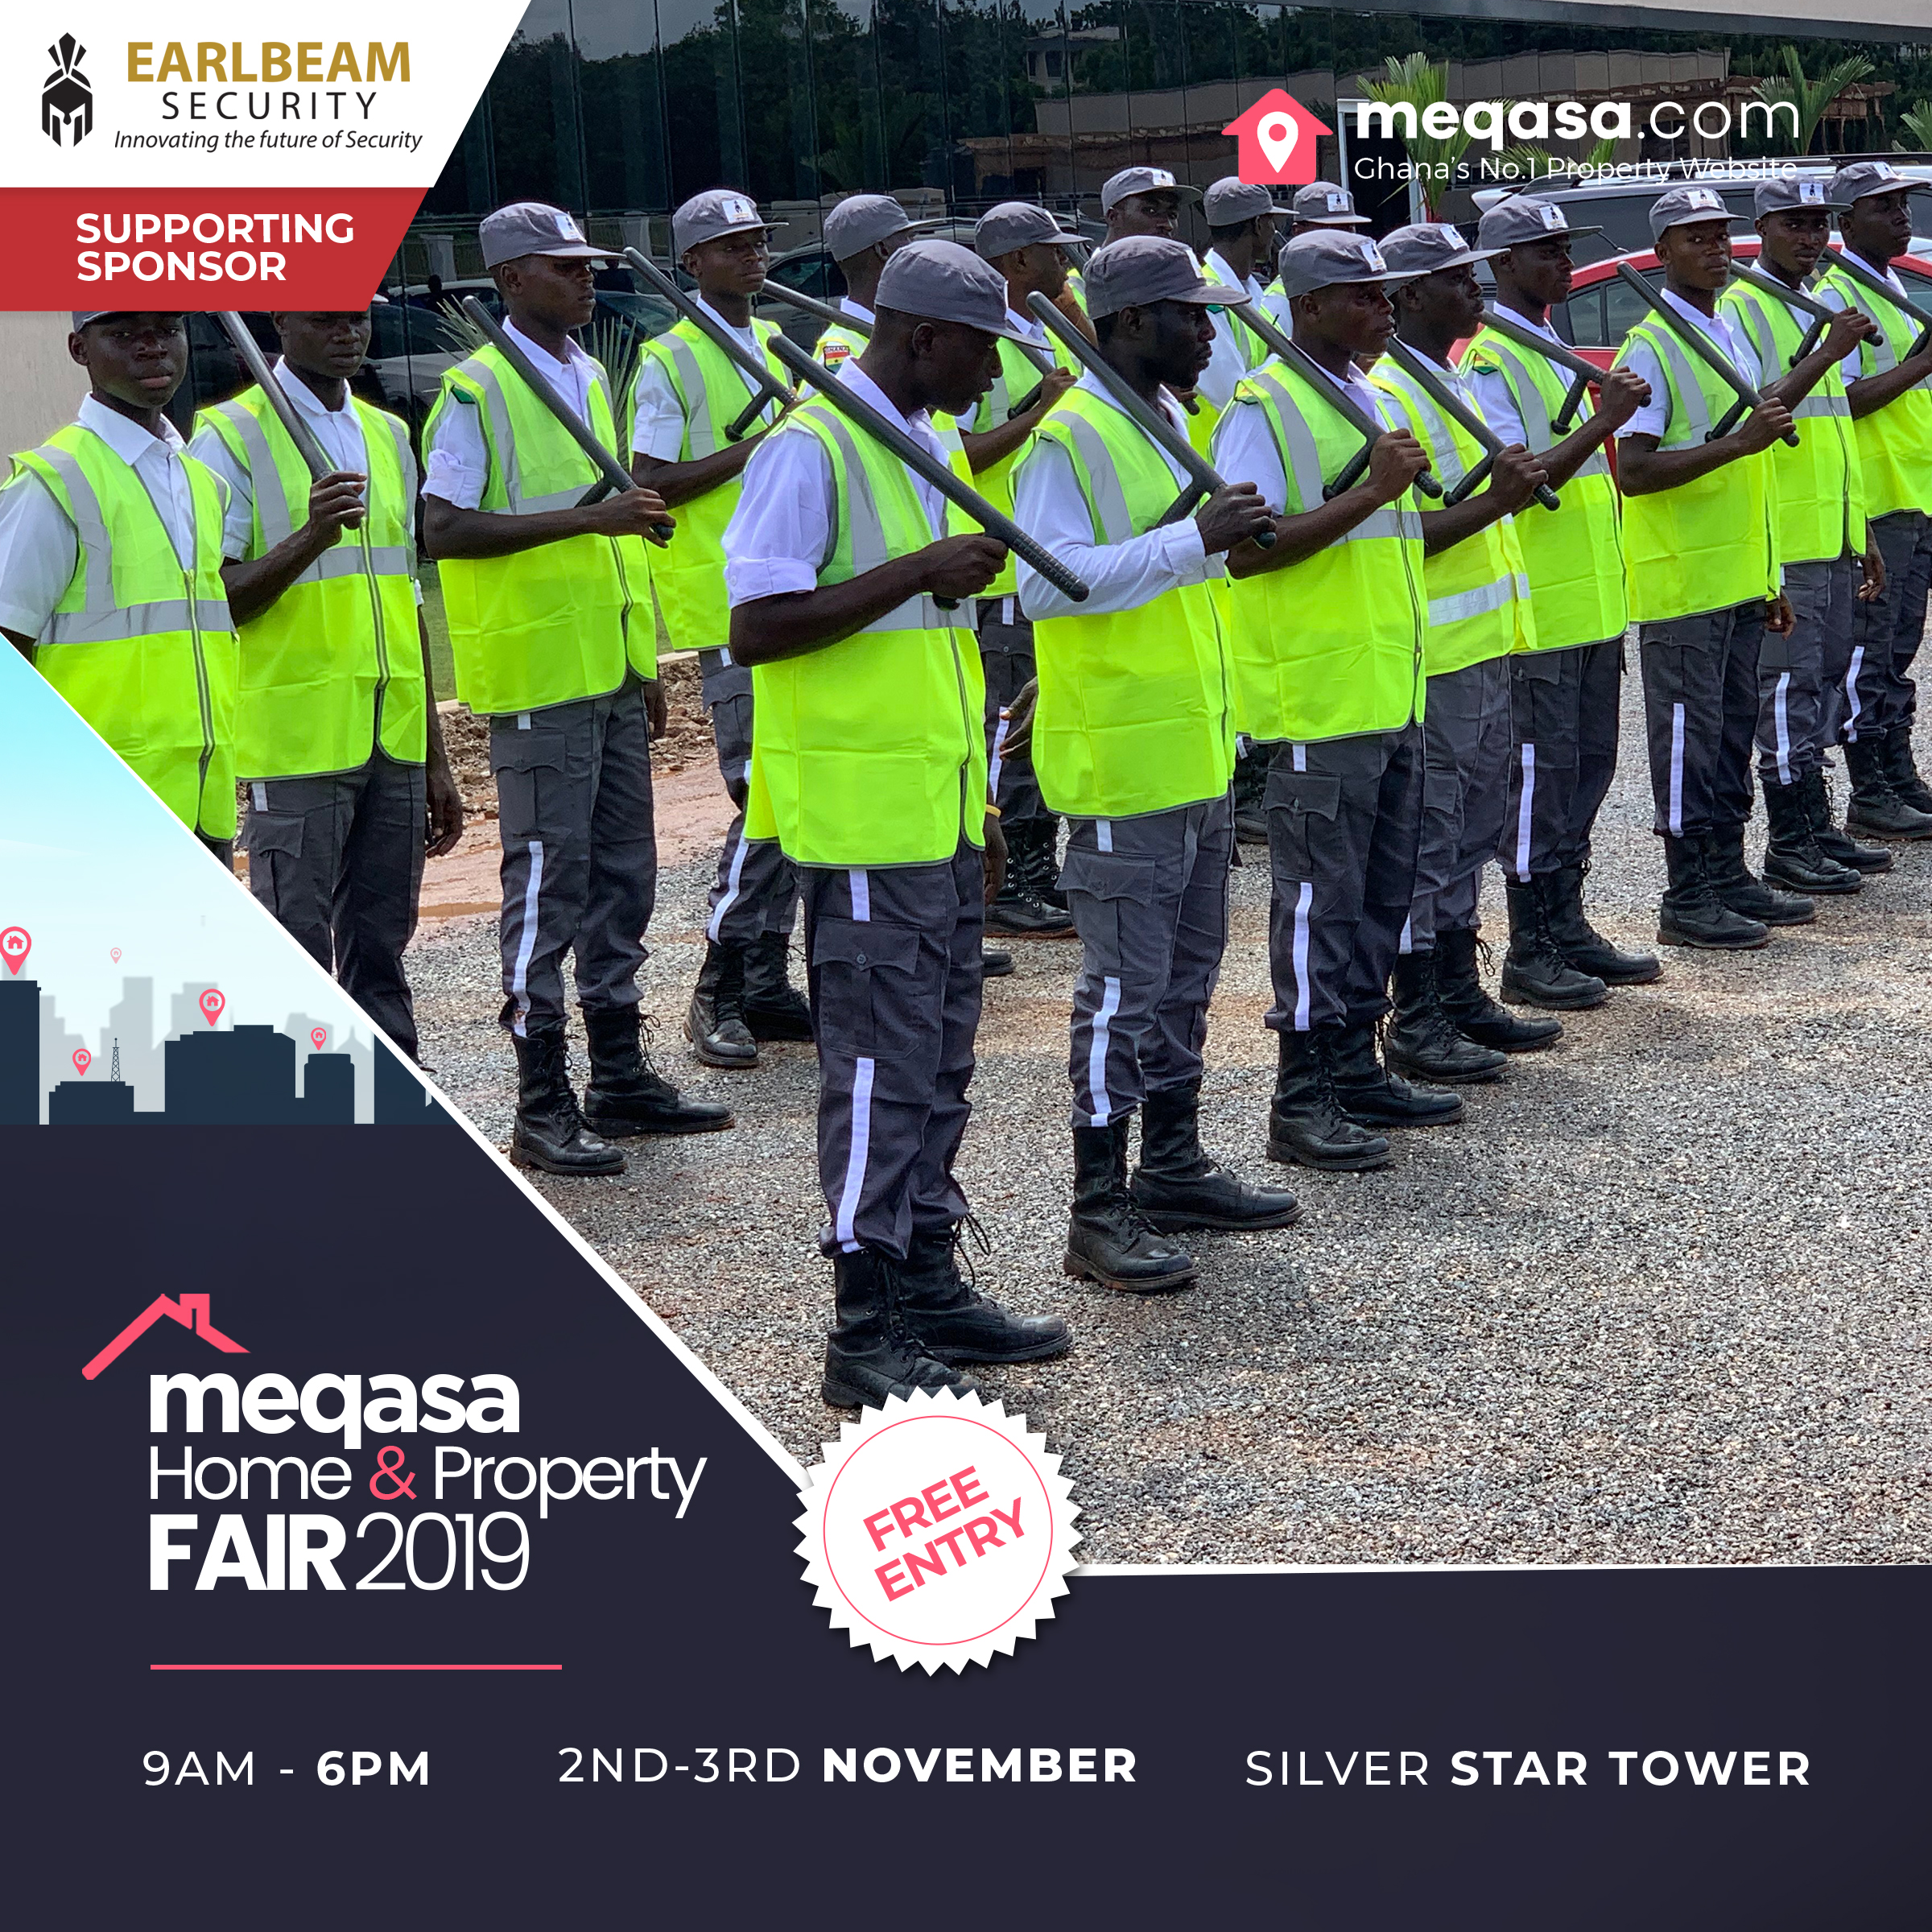 Earlbeam Security Meqasa Home & Property Fair